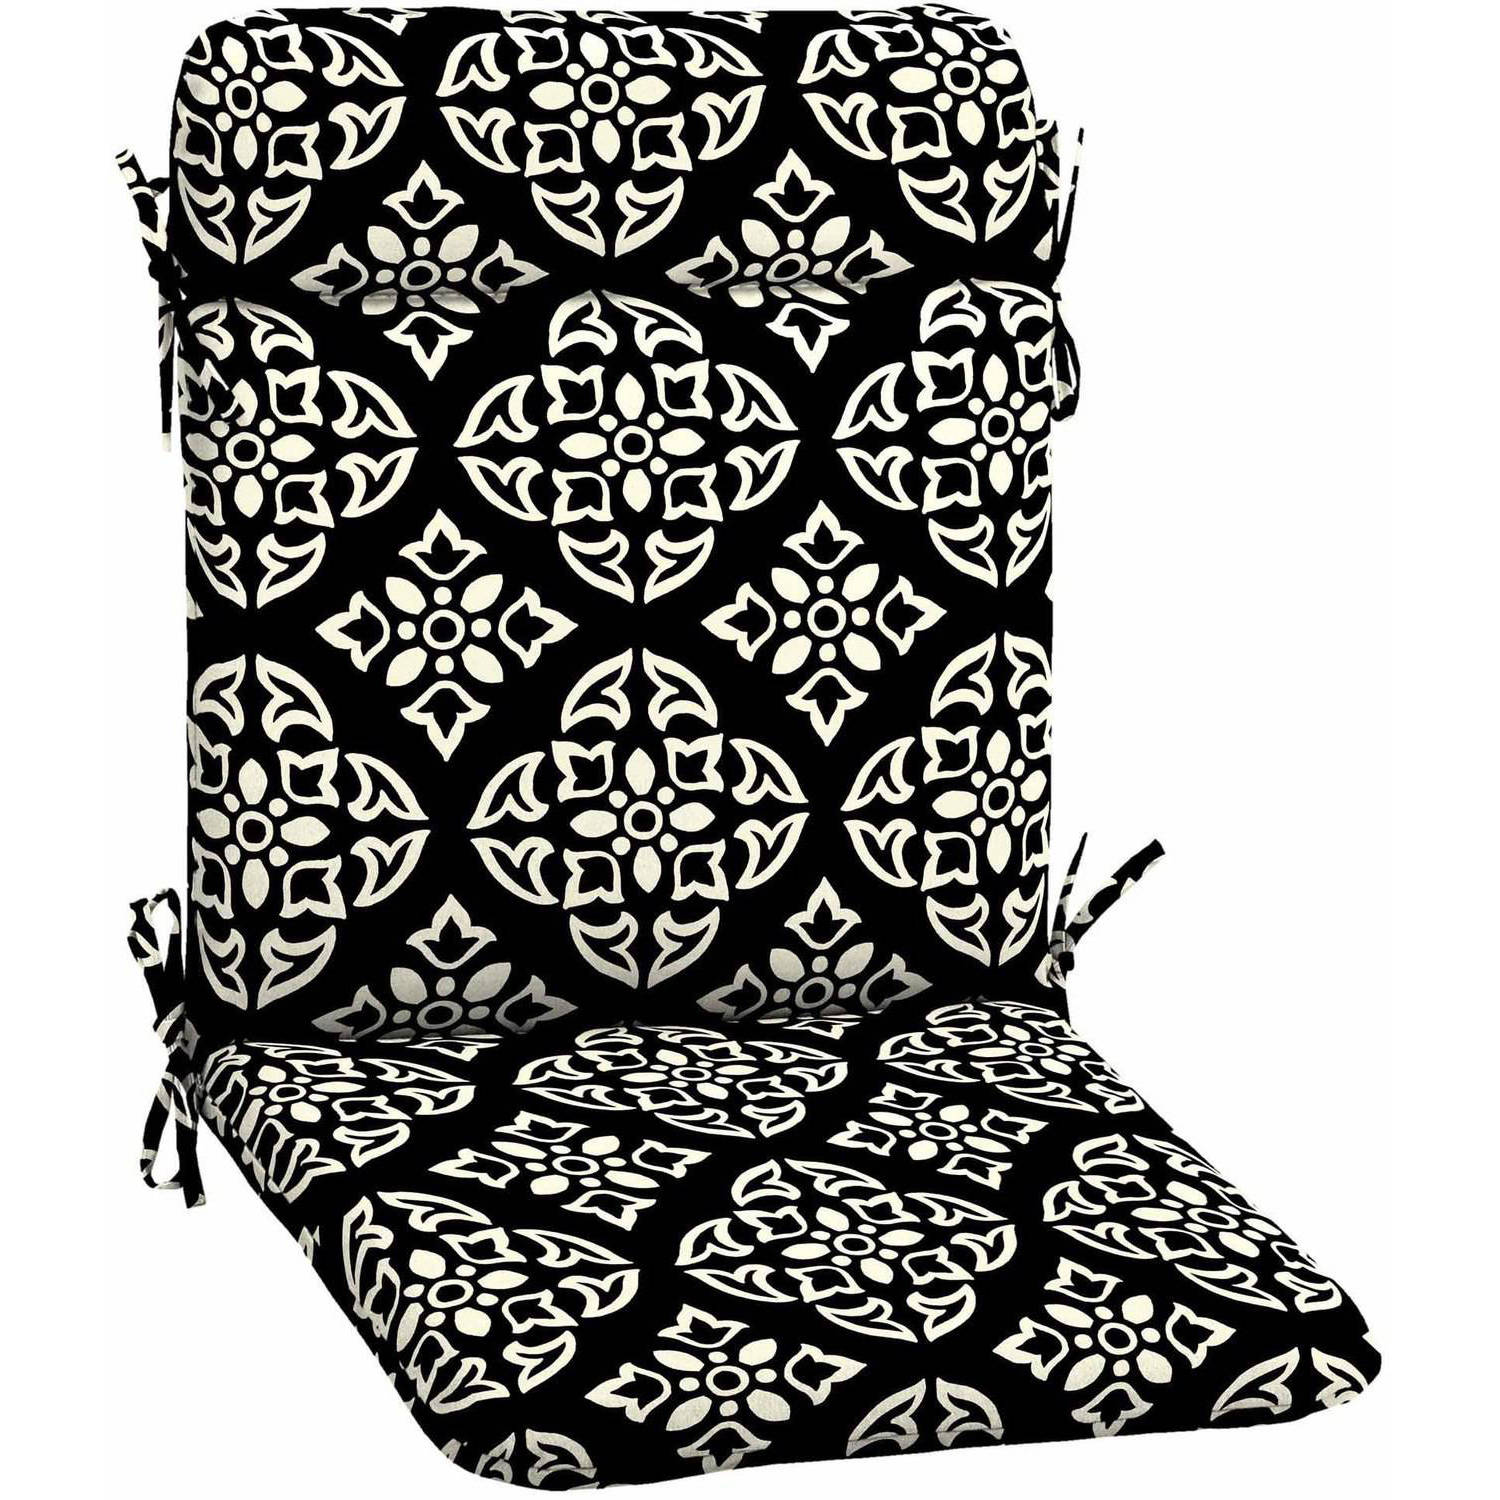 Merveilleux Better Homes And Gardens Outdoor Patio Wrought Iron Chair Pad, Black White  Medallion